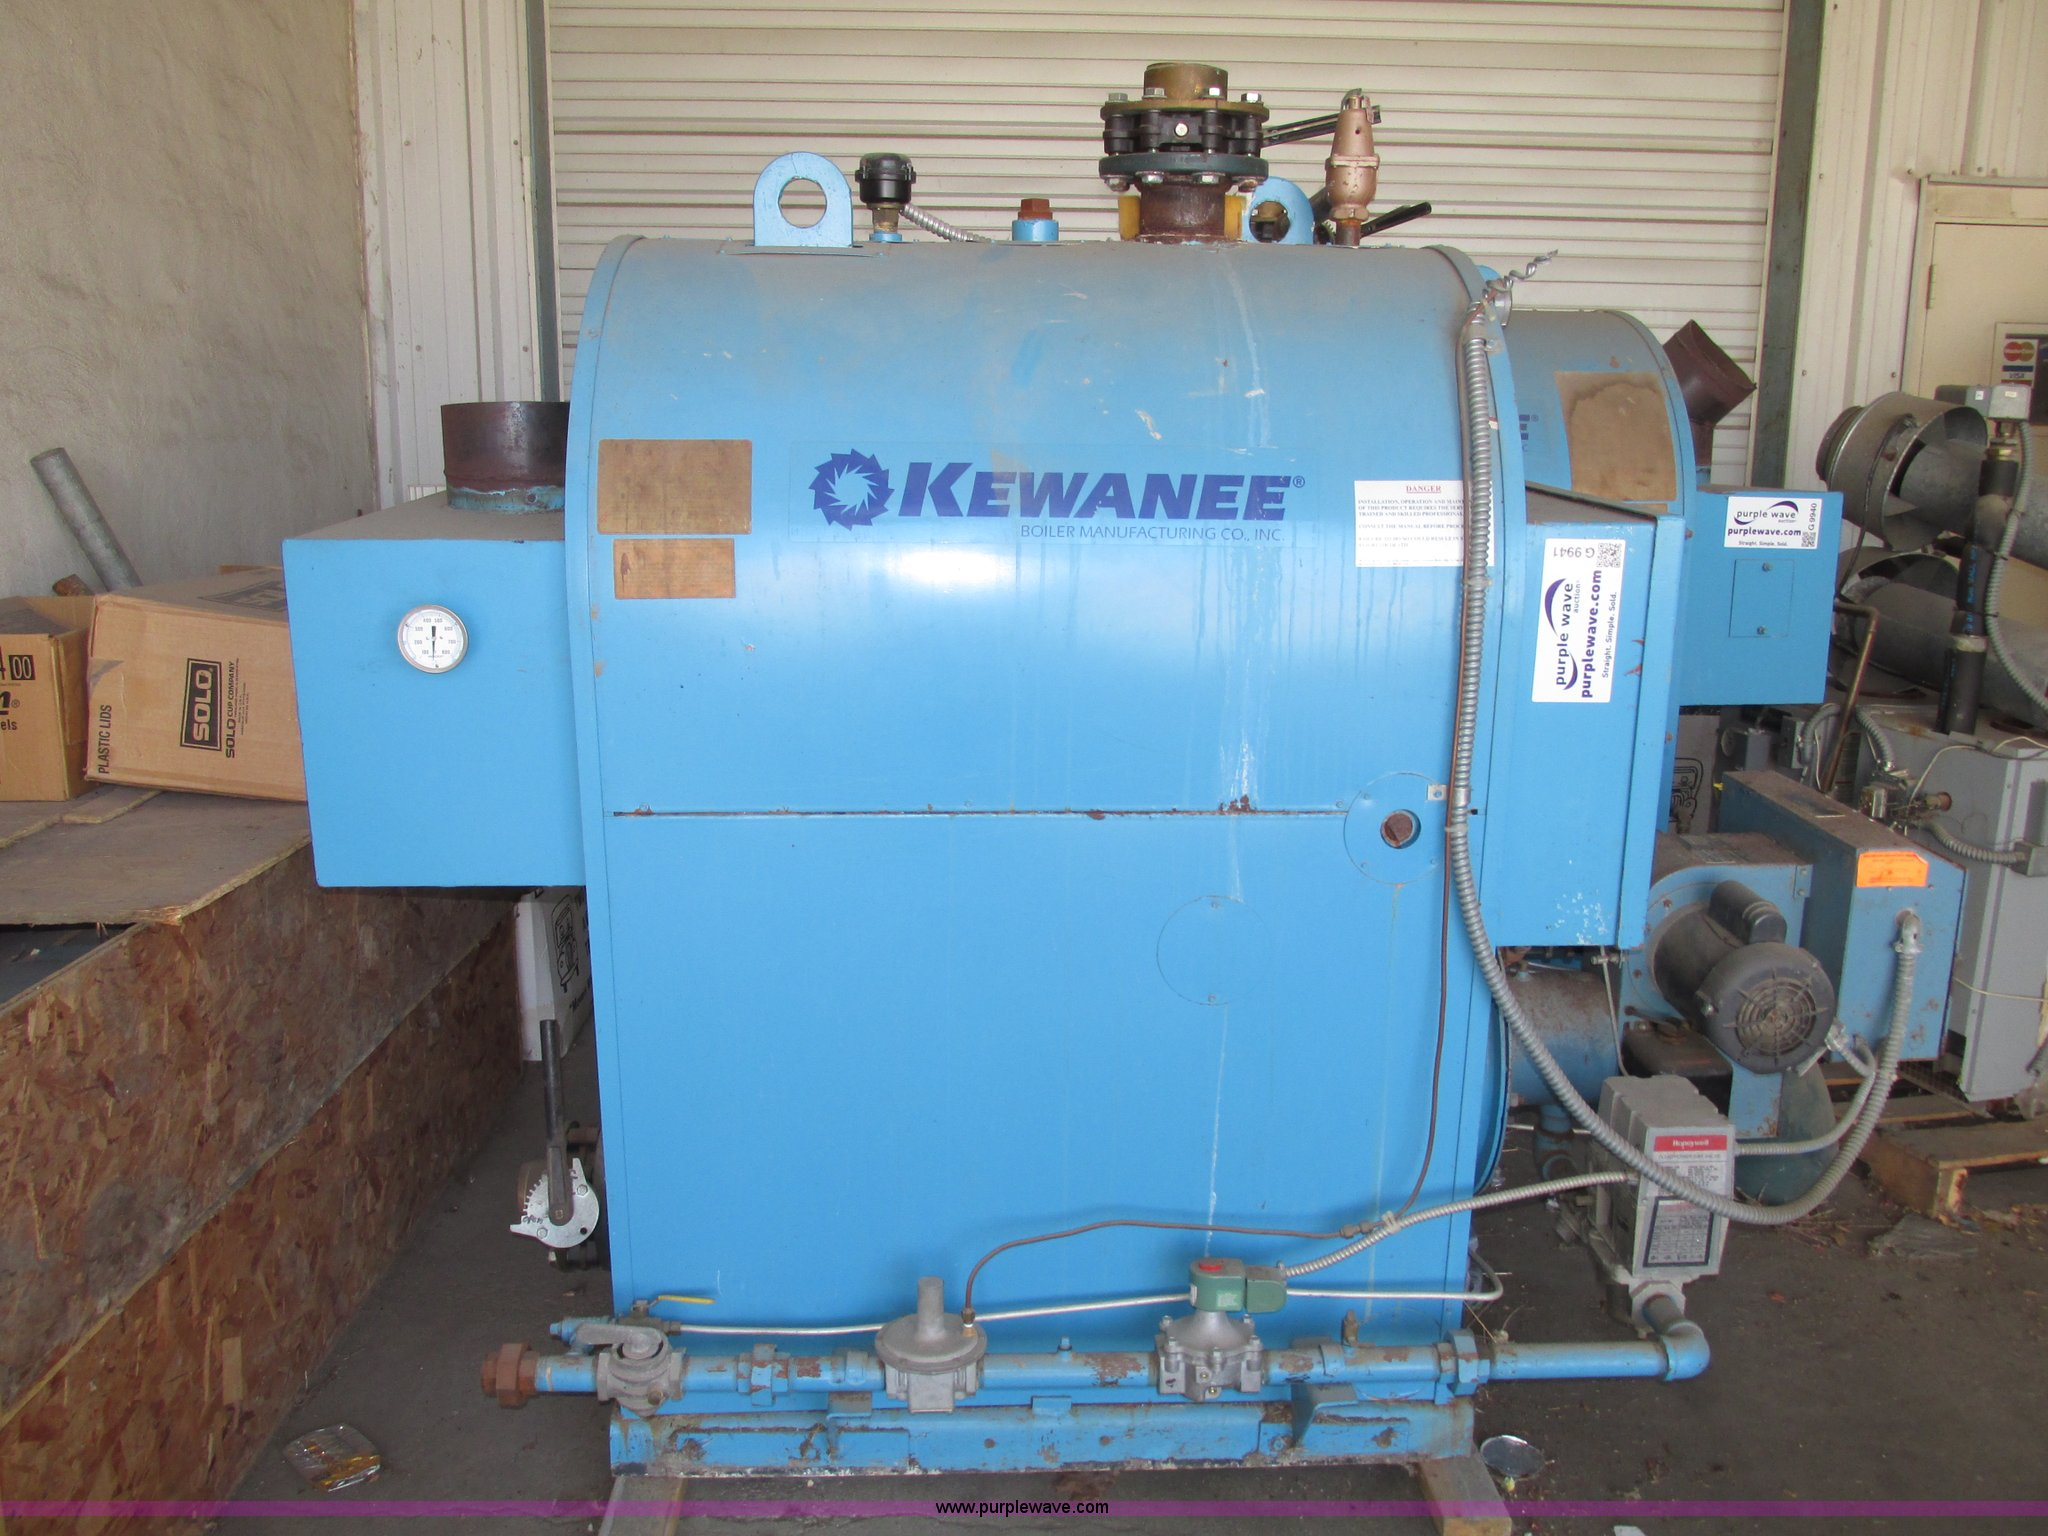 1998 Kewanee dual fuel hot water trim boiler | Item G9941 | ...